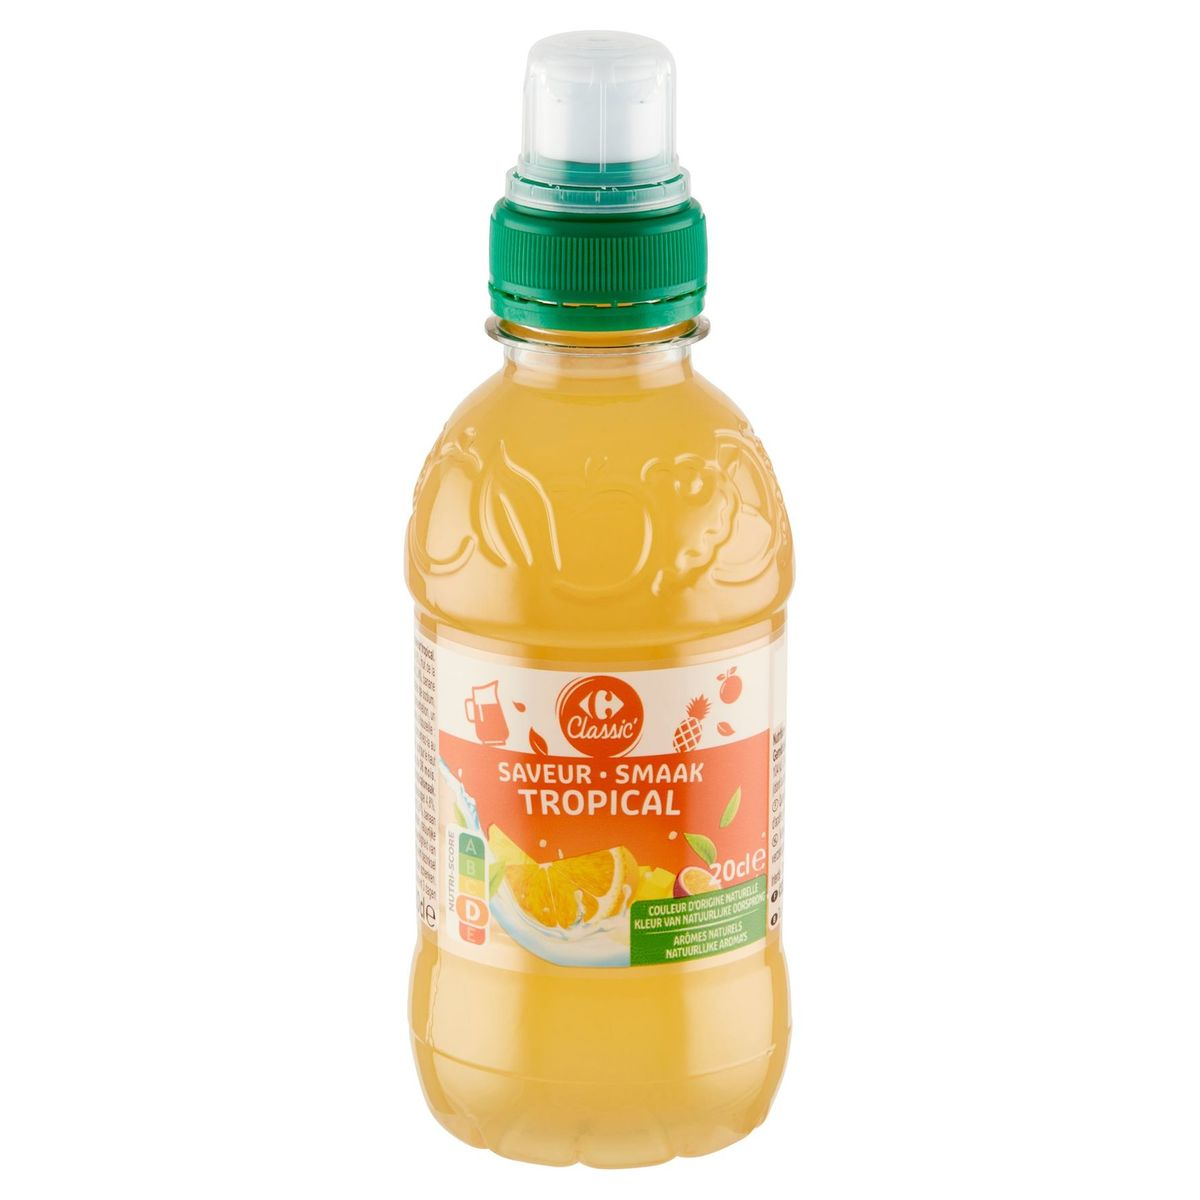 Carrefour Classic' Smaak Tropical 20 cl